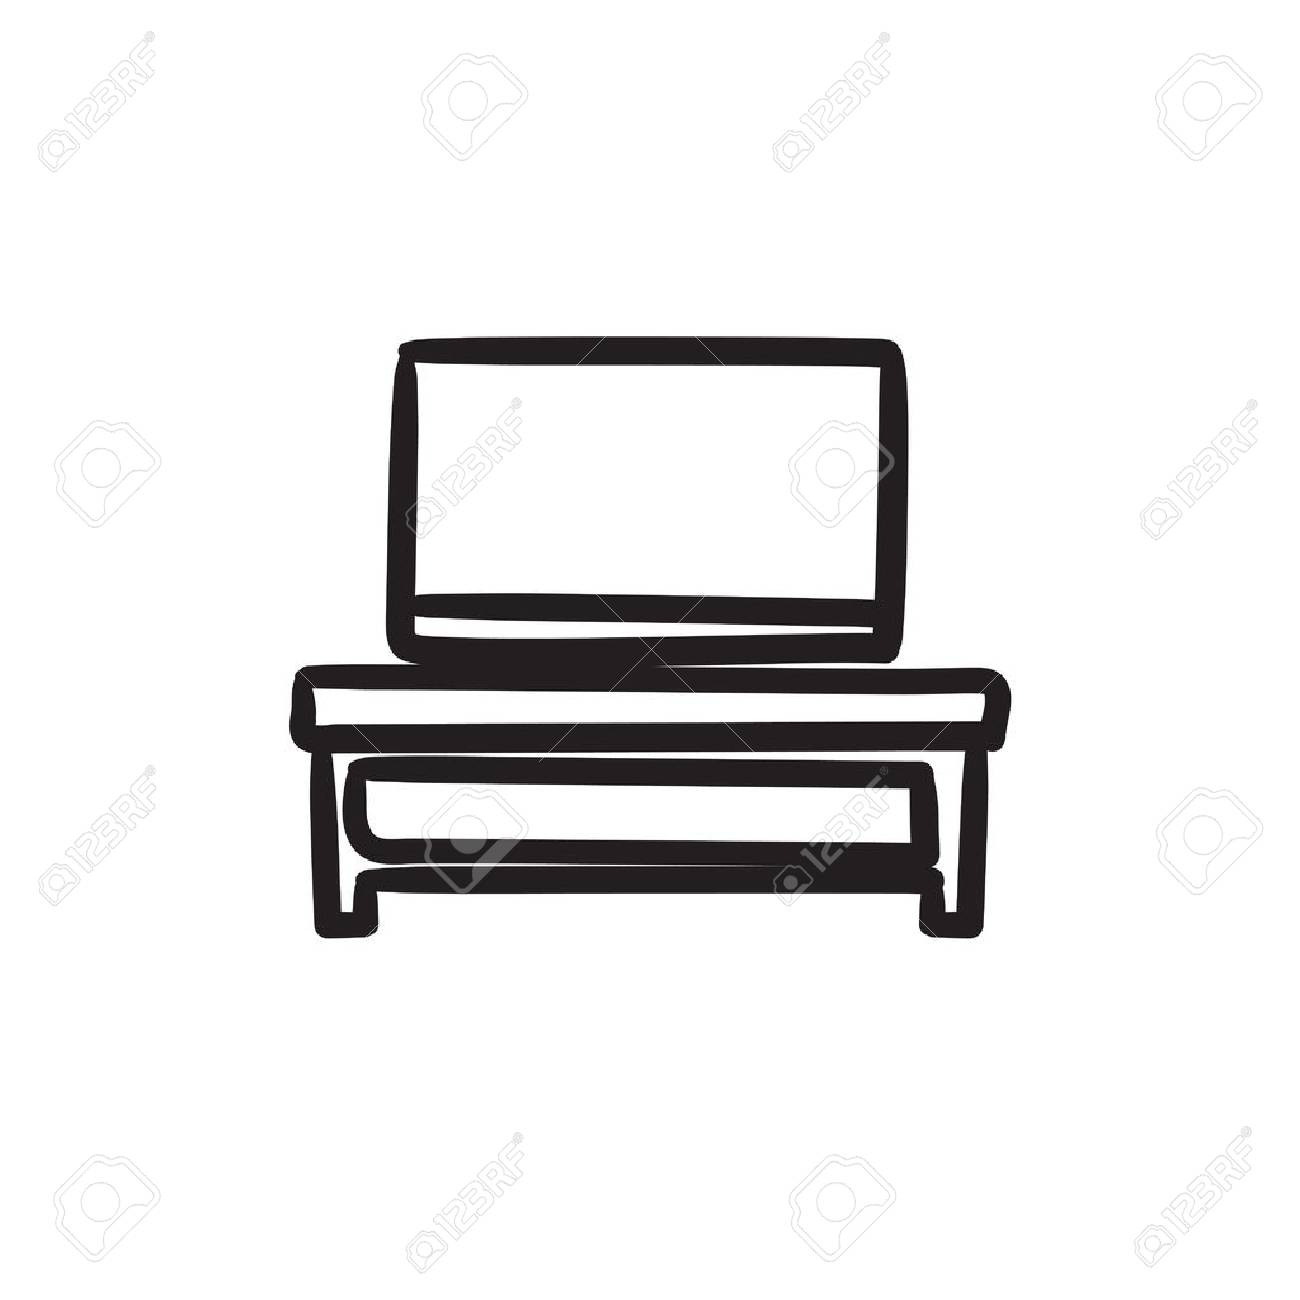 Flat Screen Tv Stands Flat Screen Tv On Modern Tv Stand Vector Sketch Icon Isolated